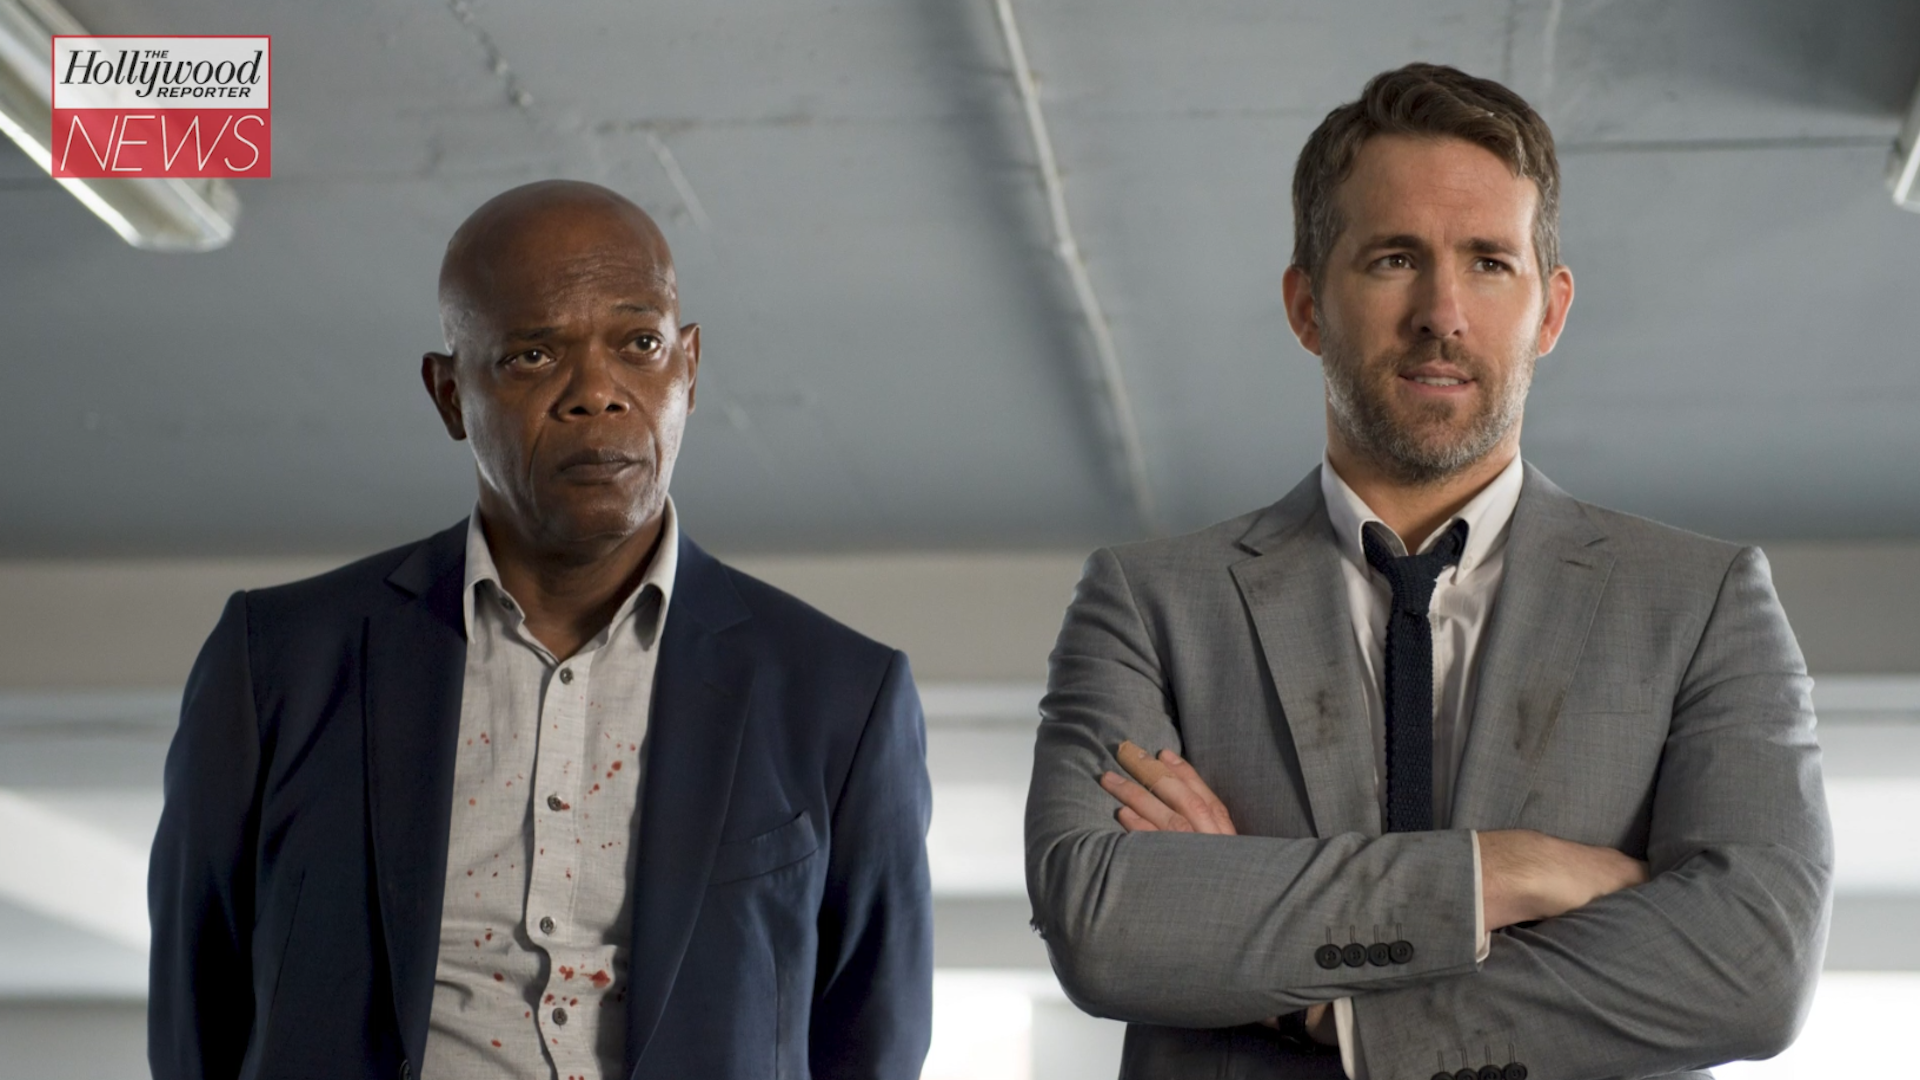 'The Hitman's Wife's Bodyguard': Ryan Reynolds, Samuel L. Jackson Reunite in First Trailer | THR News